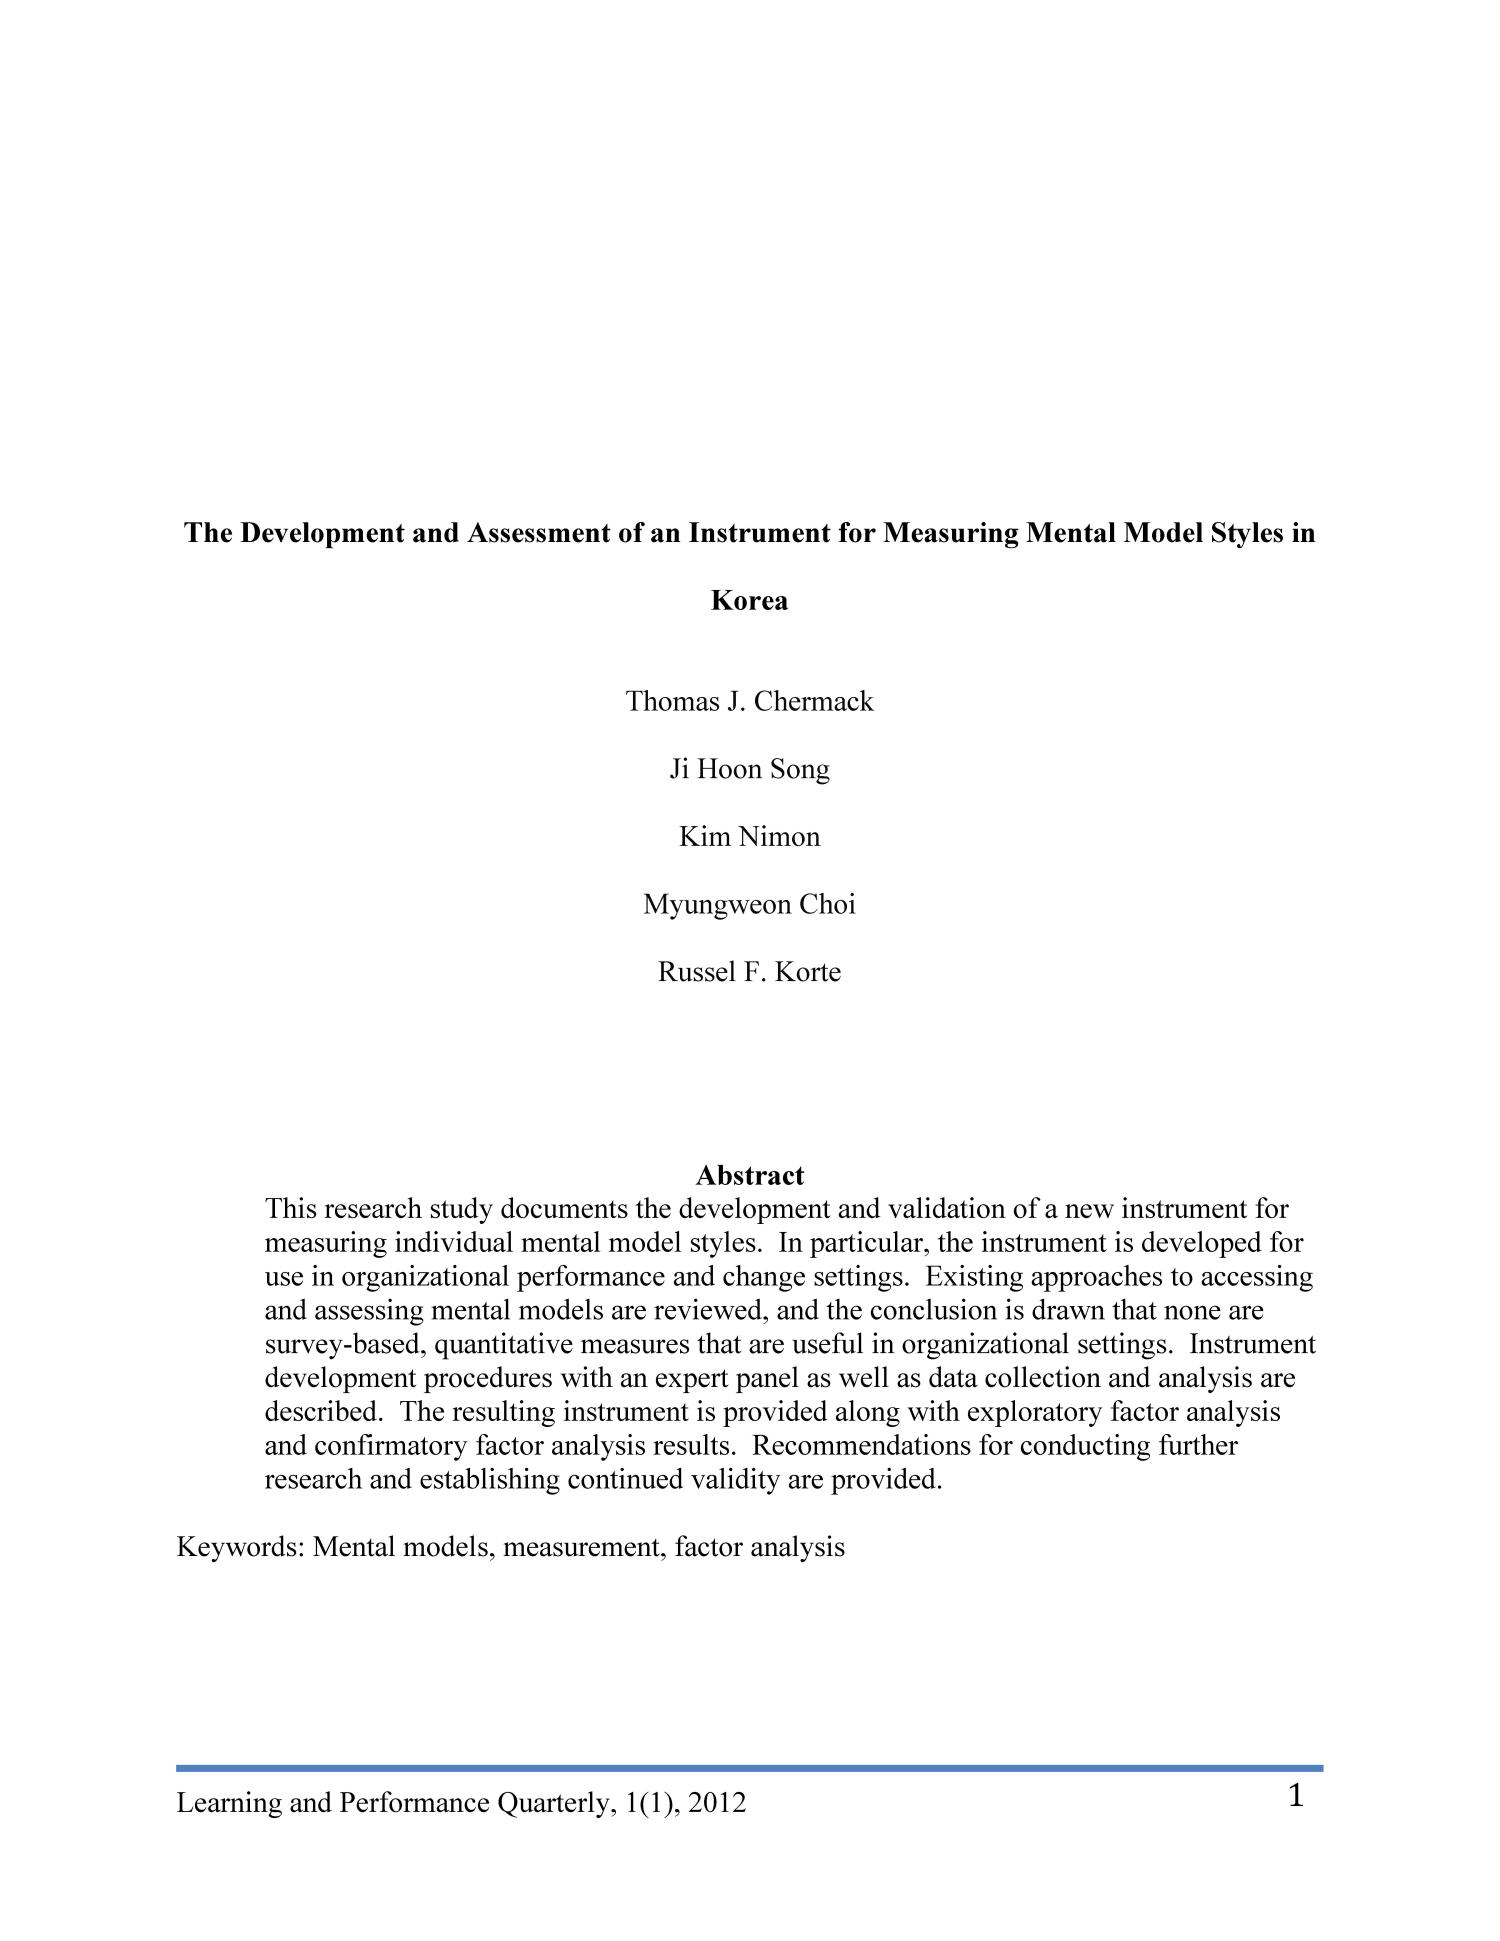 The Development and Assessment of an Instrument for Measuring Mental Model Styles in Korea                                                                                                      1